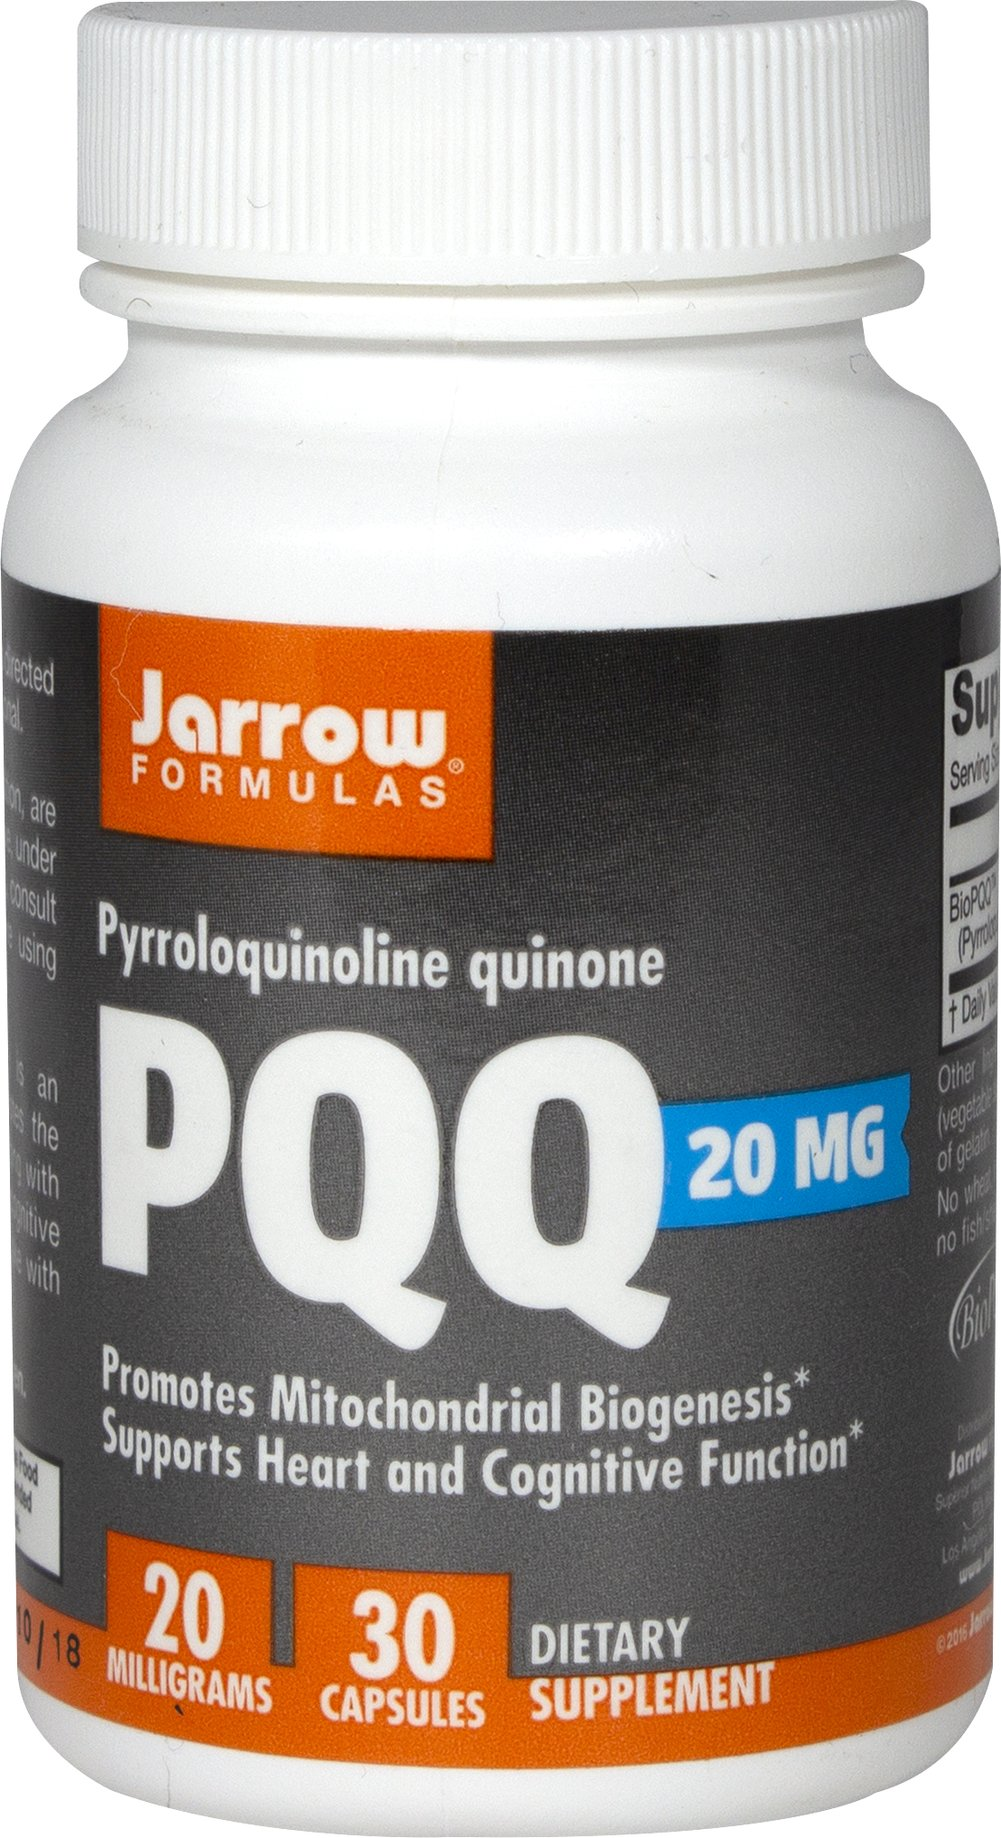 PQQ 20 mg Thumbnail Alternate Bottle View